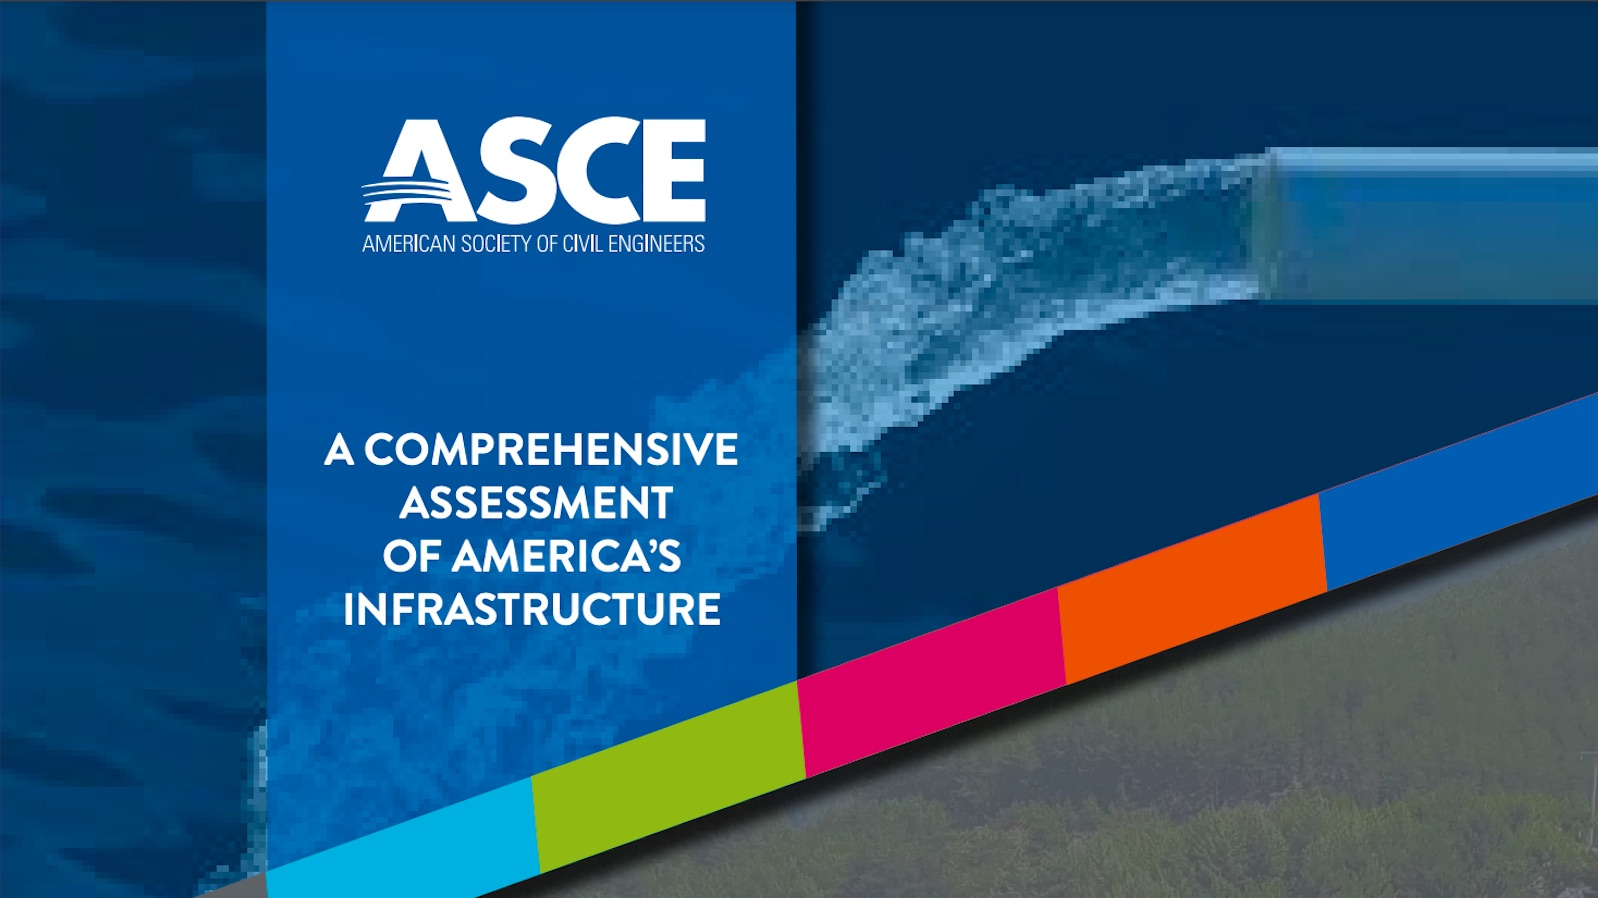 '2021 Report Card for America's Infrastructure'